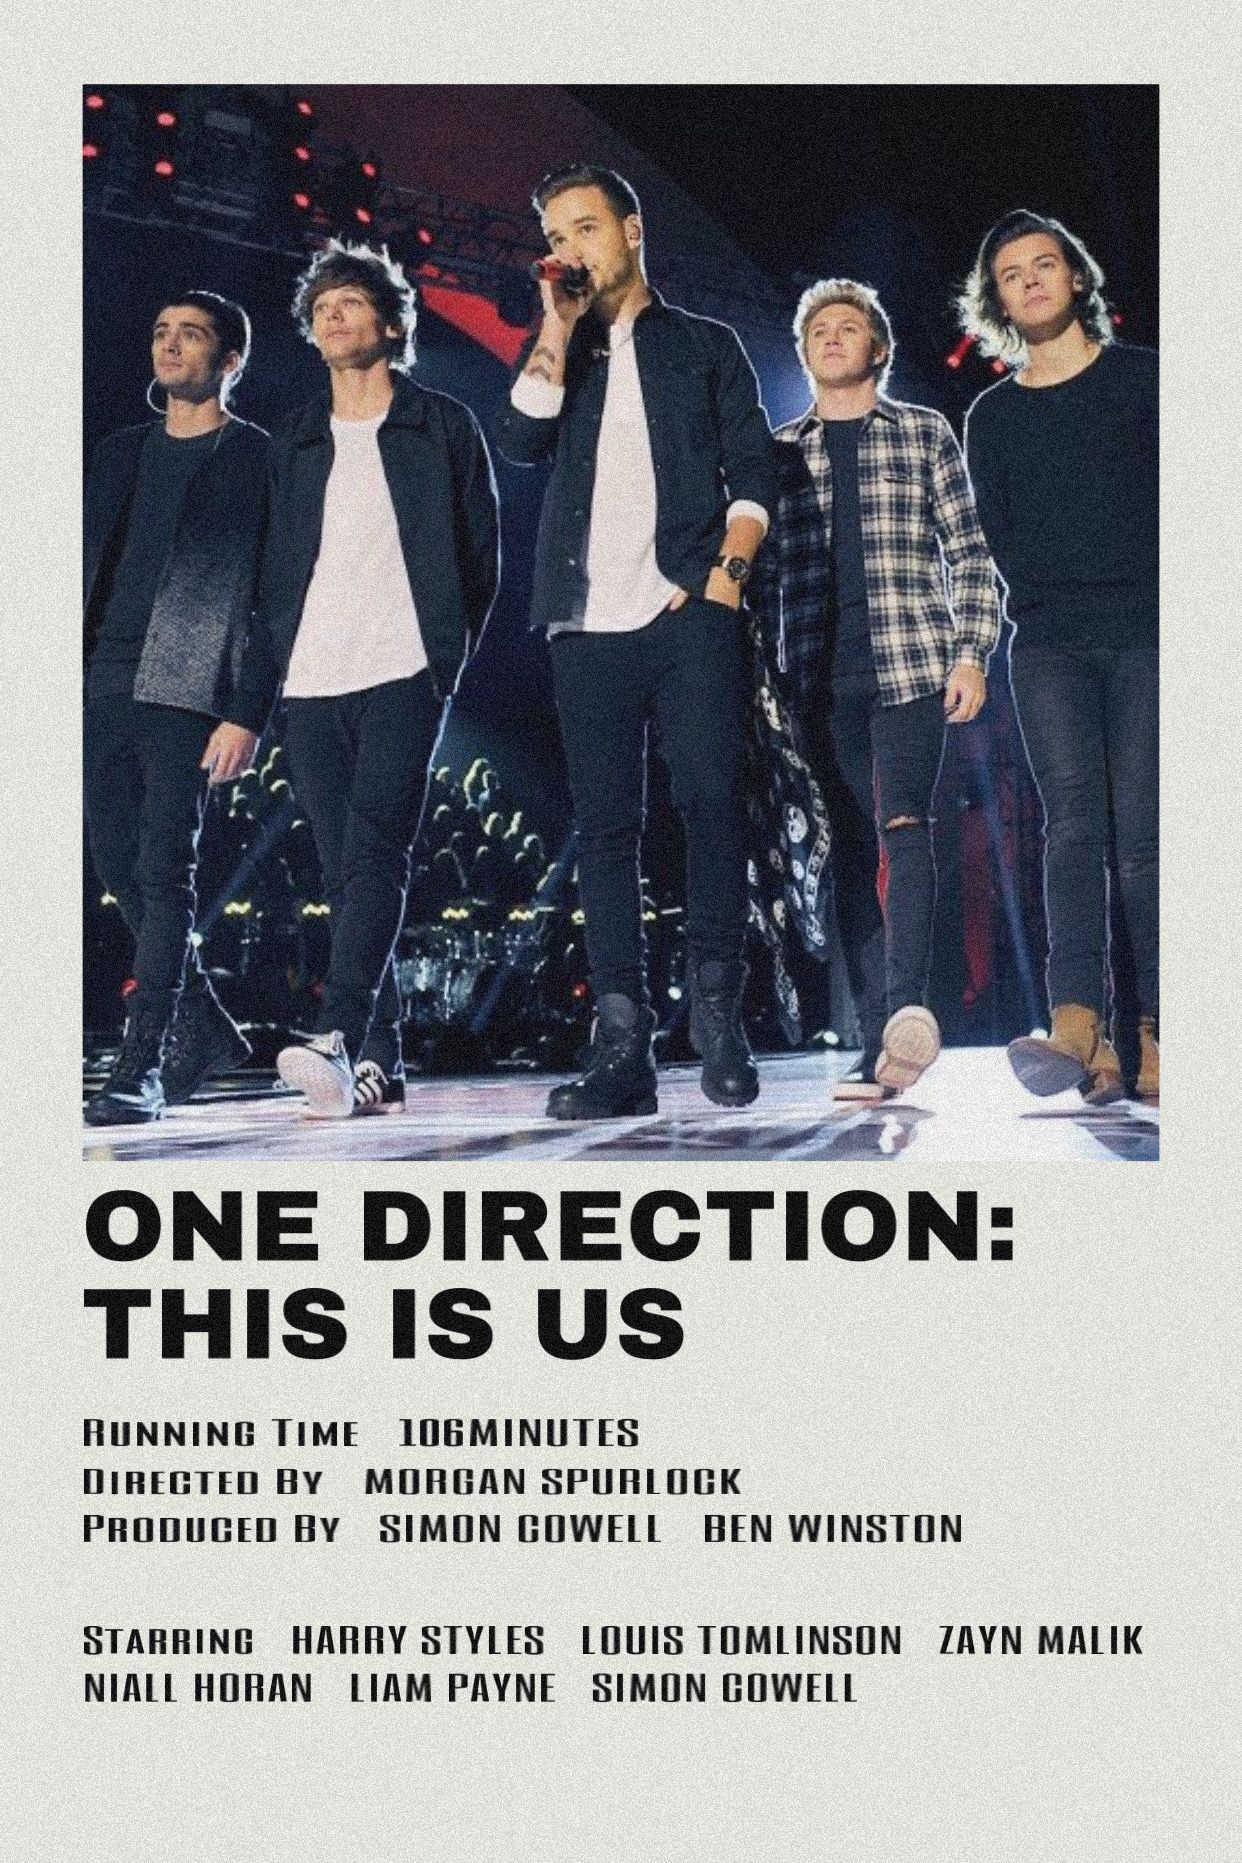 Pin By Lovelee Taylor On R00m One Direction Albums One Direction Posters One Direction Drawings